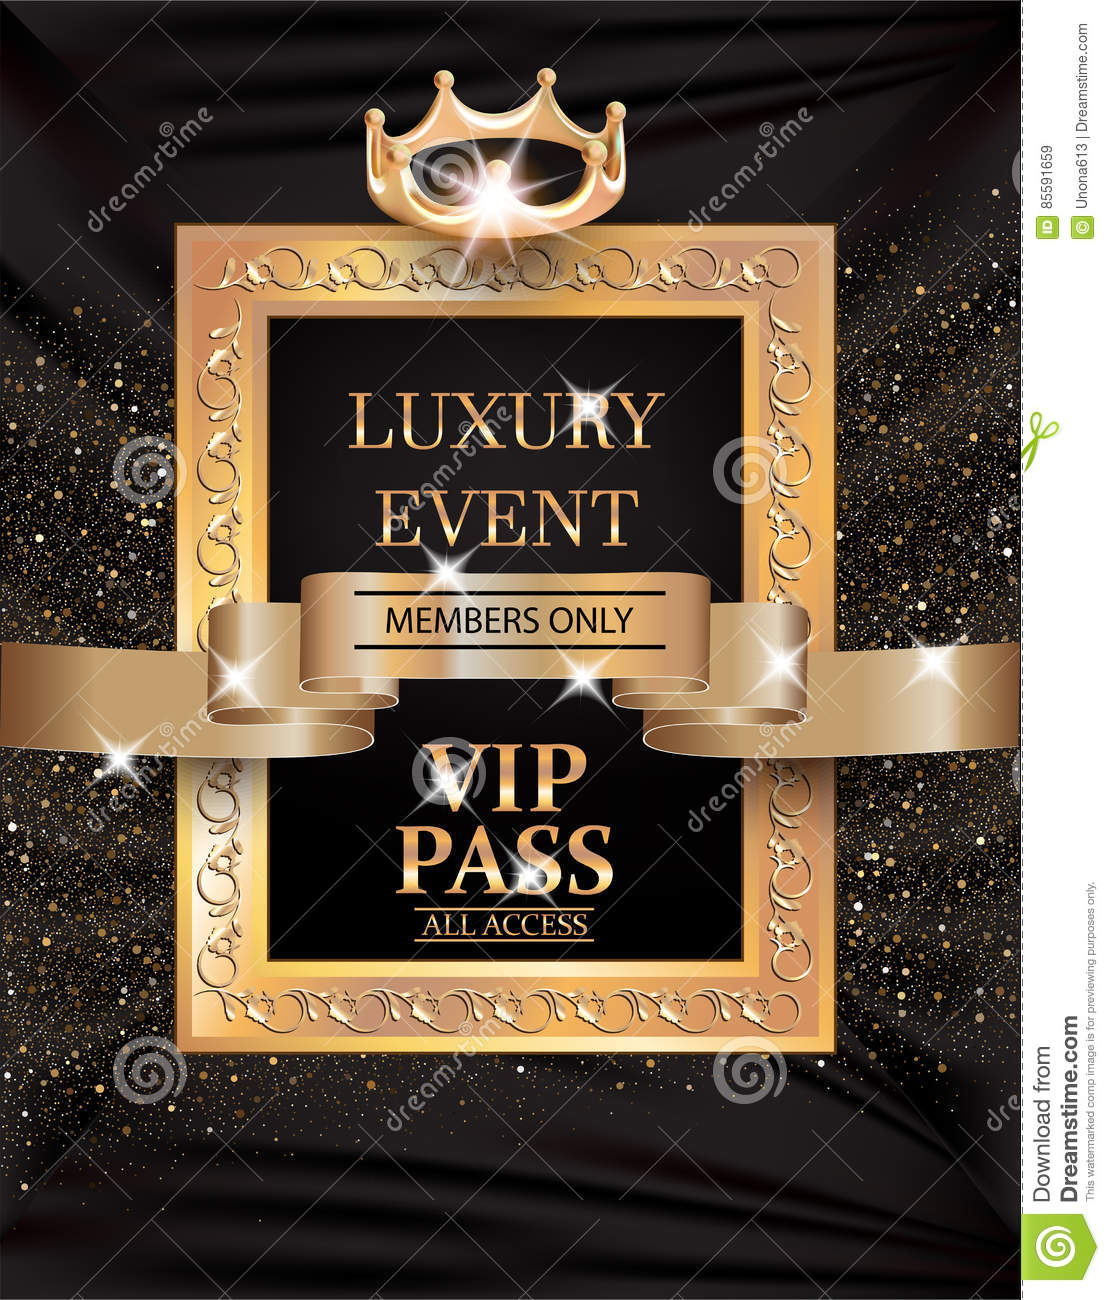 luxury event vip pass with vintage frame gold ribbon and